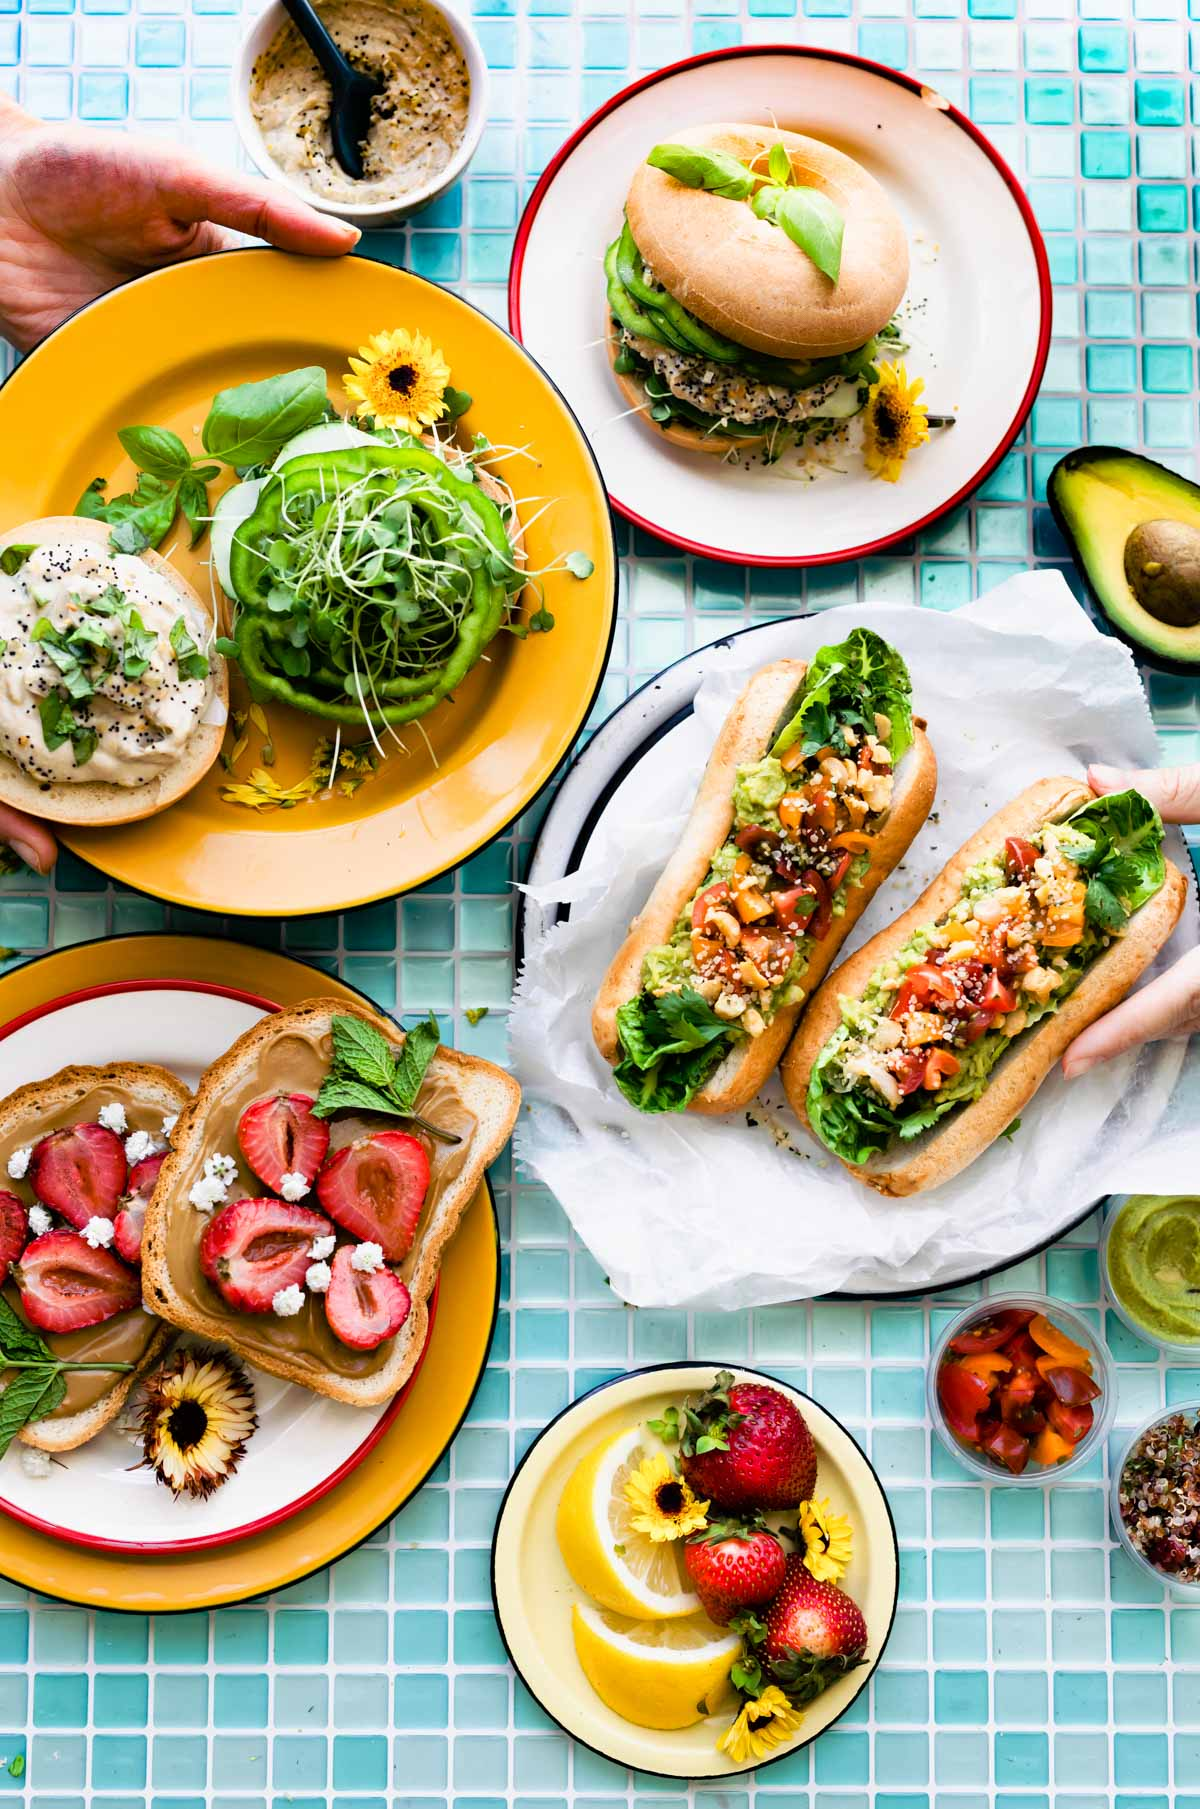 3 vegan sandwiches on colorful plates